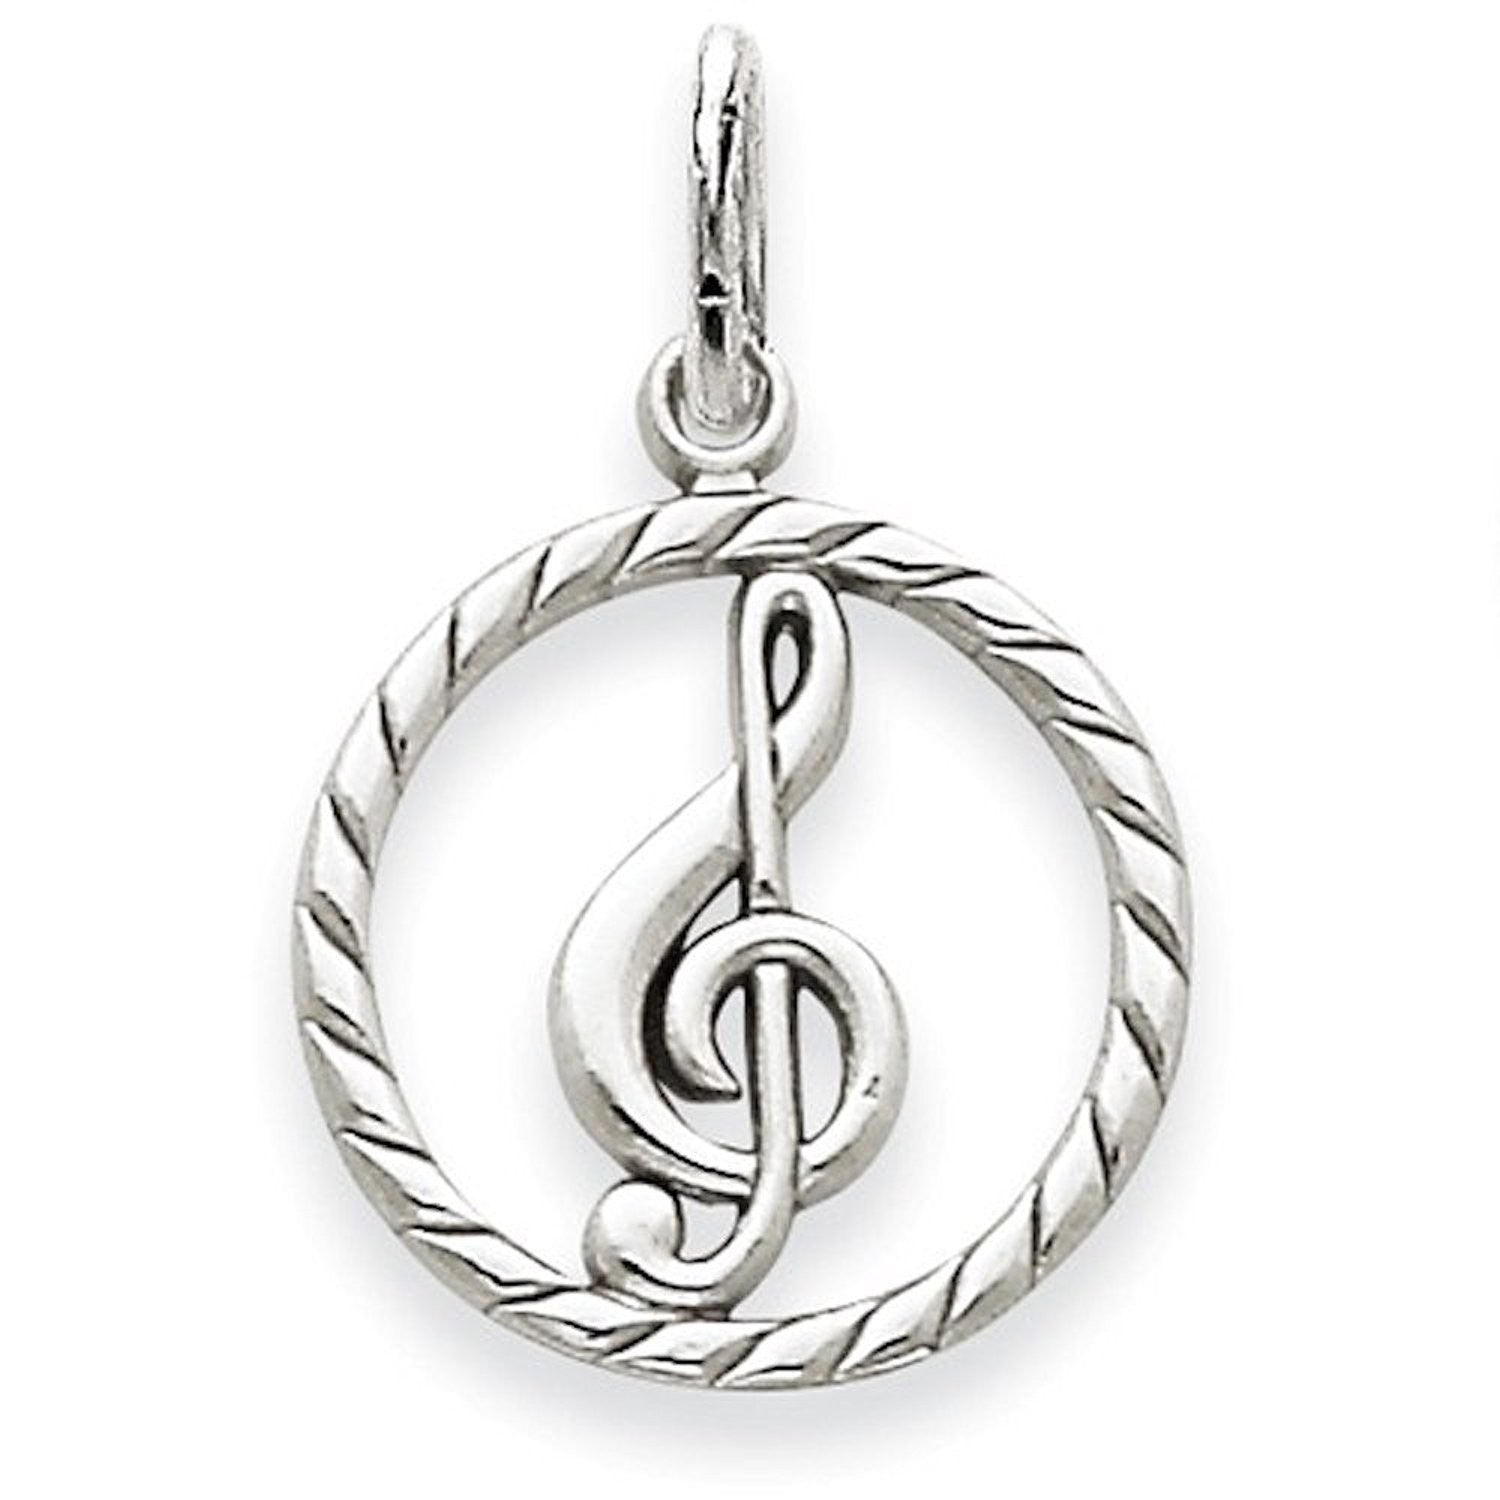 14k White Gold Music Treble Clef Symbol Pendant Charm